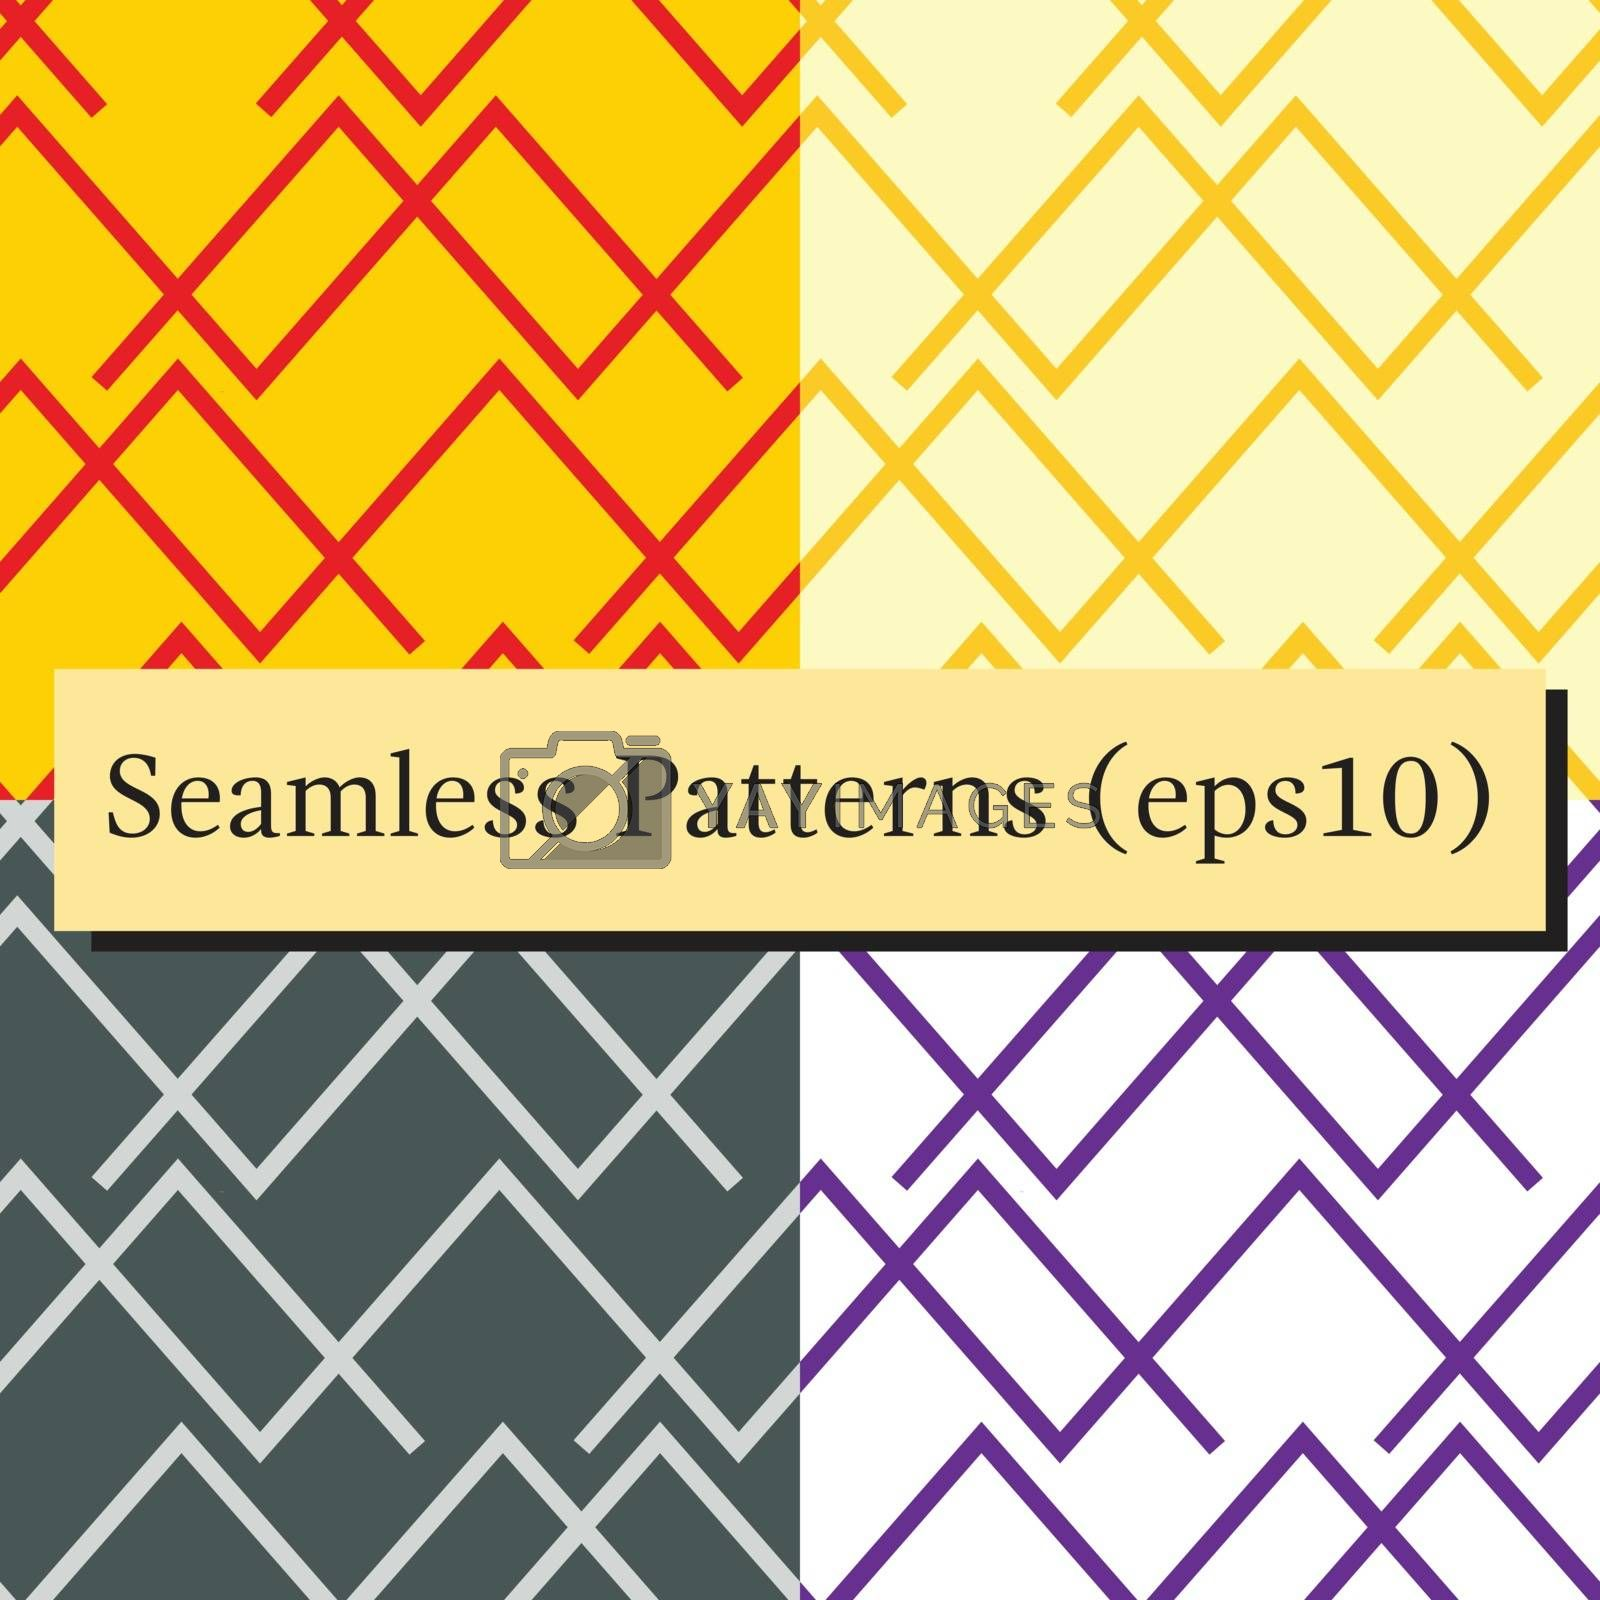 Seamless horizontal lines patterns set in different colors. Good for textile, package or other decoration.